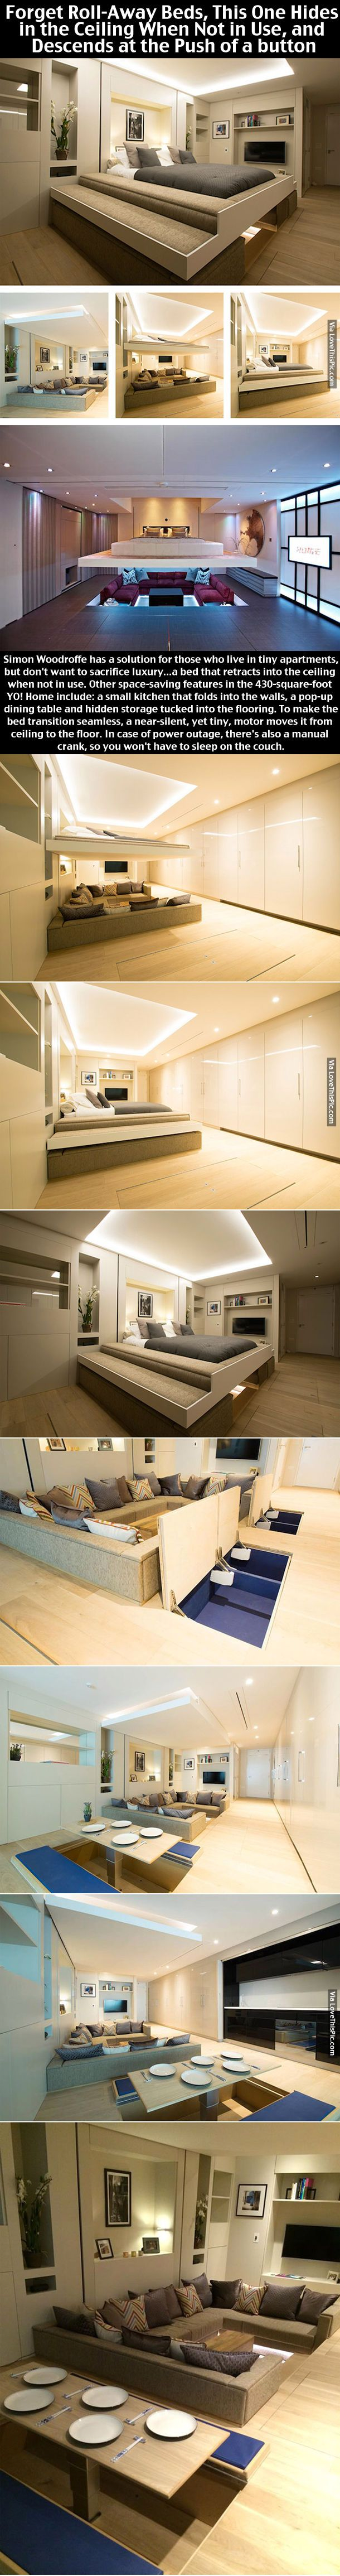 Bed Hides In The Ceiling And Decends Bedroom Home Modern Interior Design  Home Decor Home Ideas